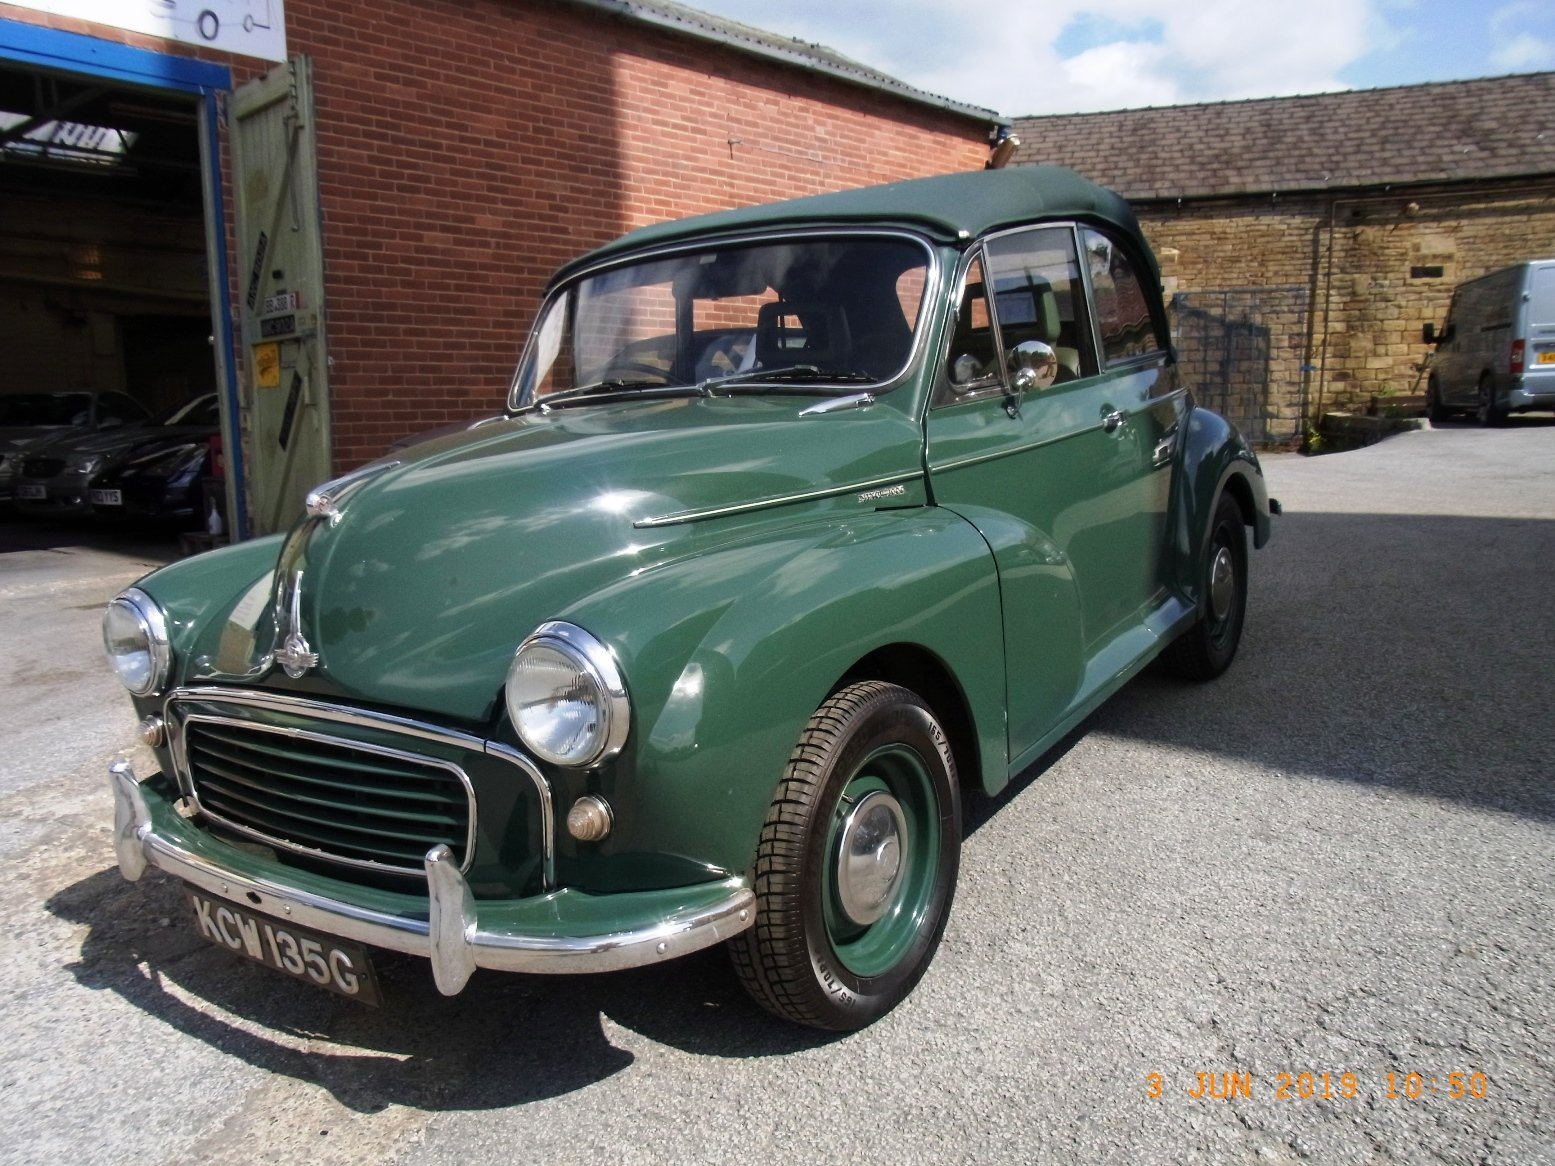 1968 Morris Minor Convertible (1275cc) For Sale (picture 1 of 6)